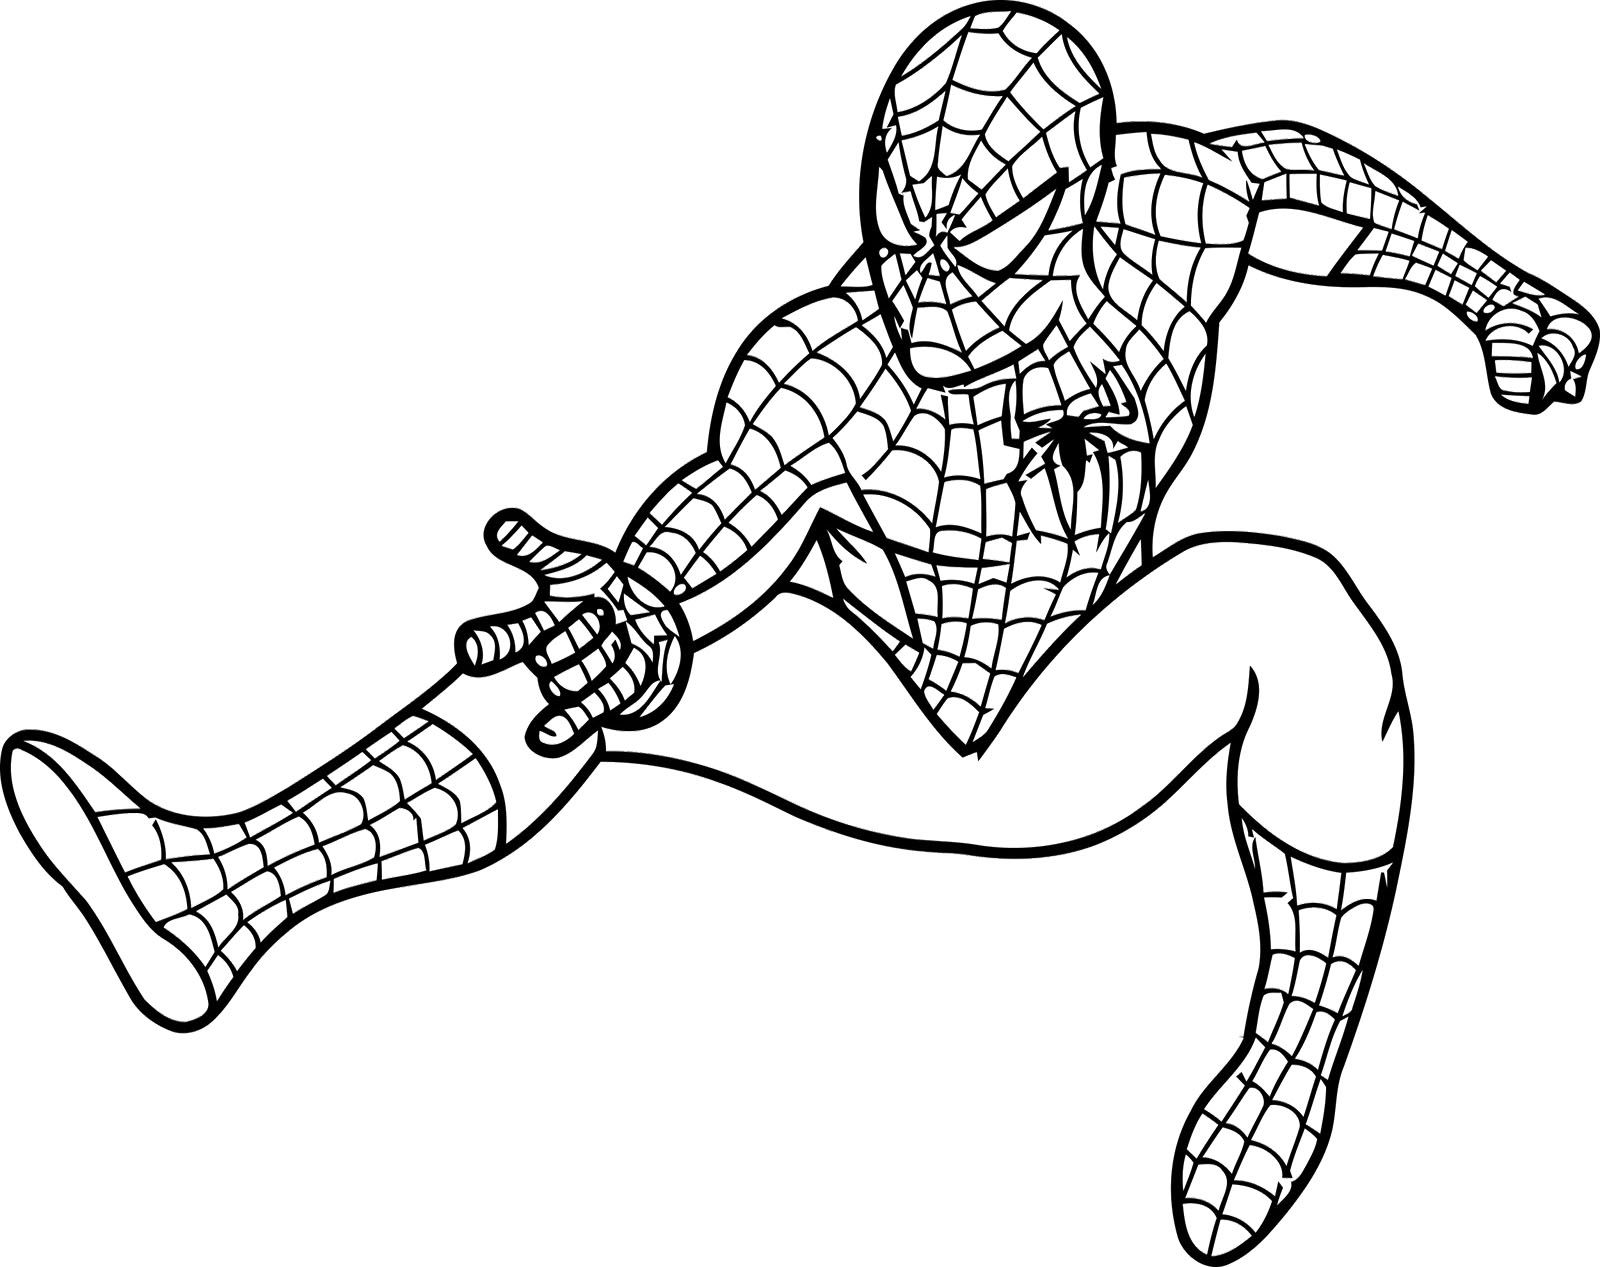 Iron man online coloring games - Ironman And Spiderman Coloring Pages Free Printout Texas Life